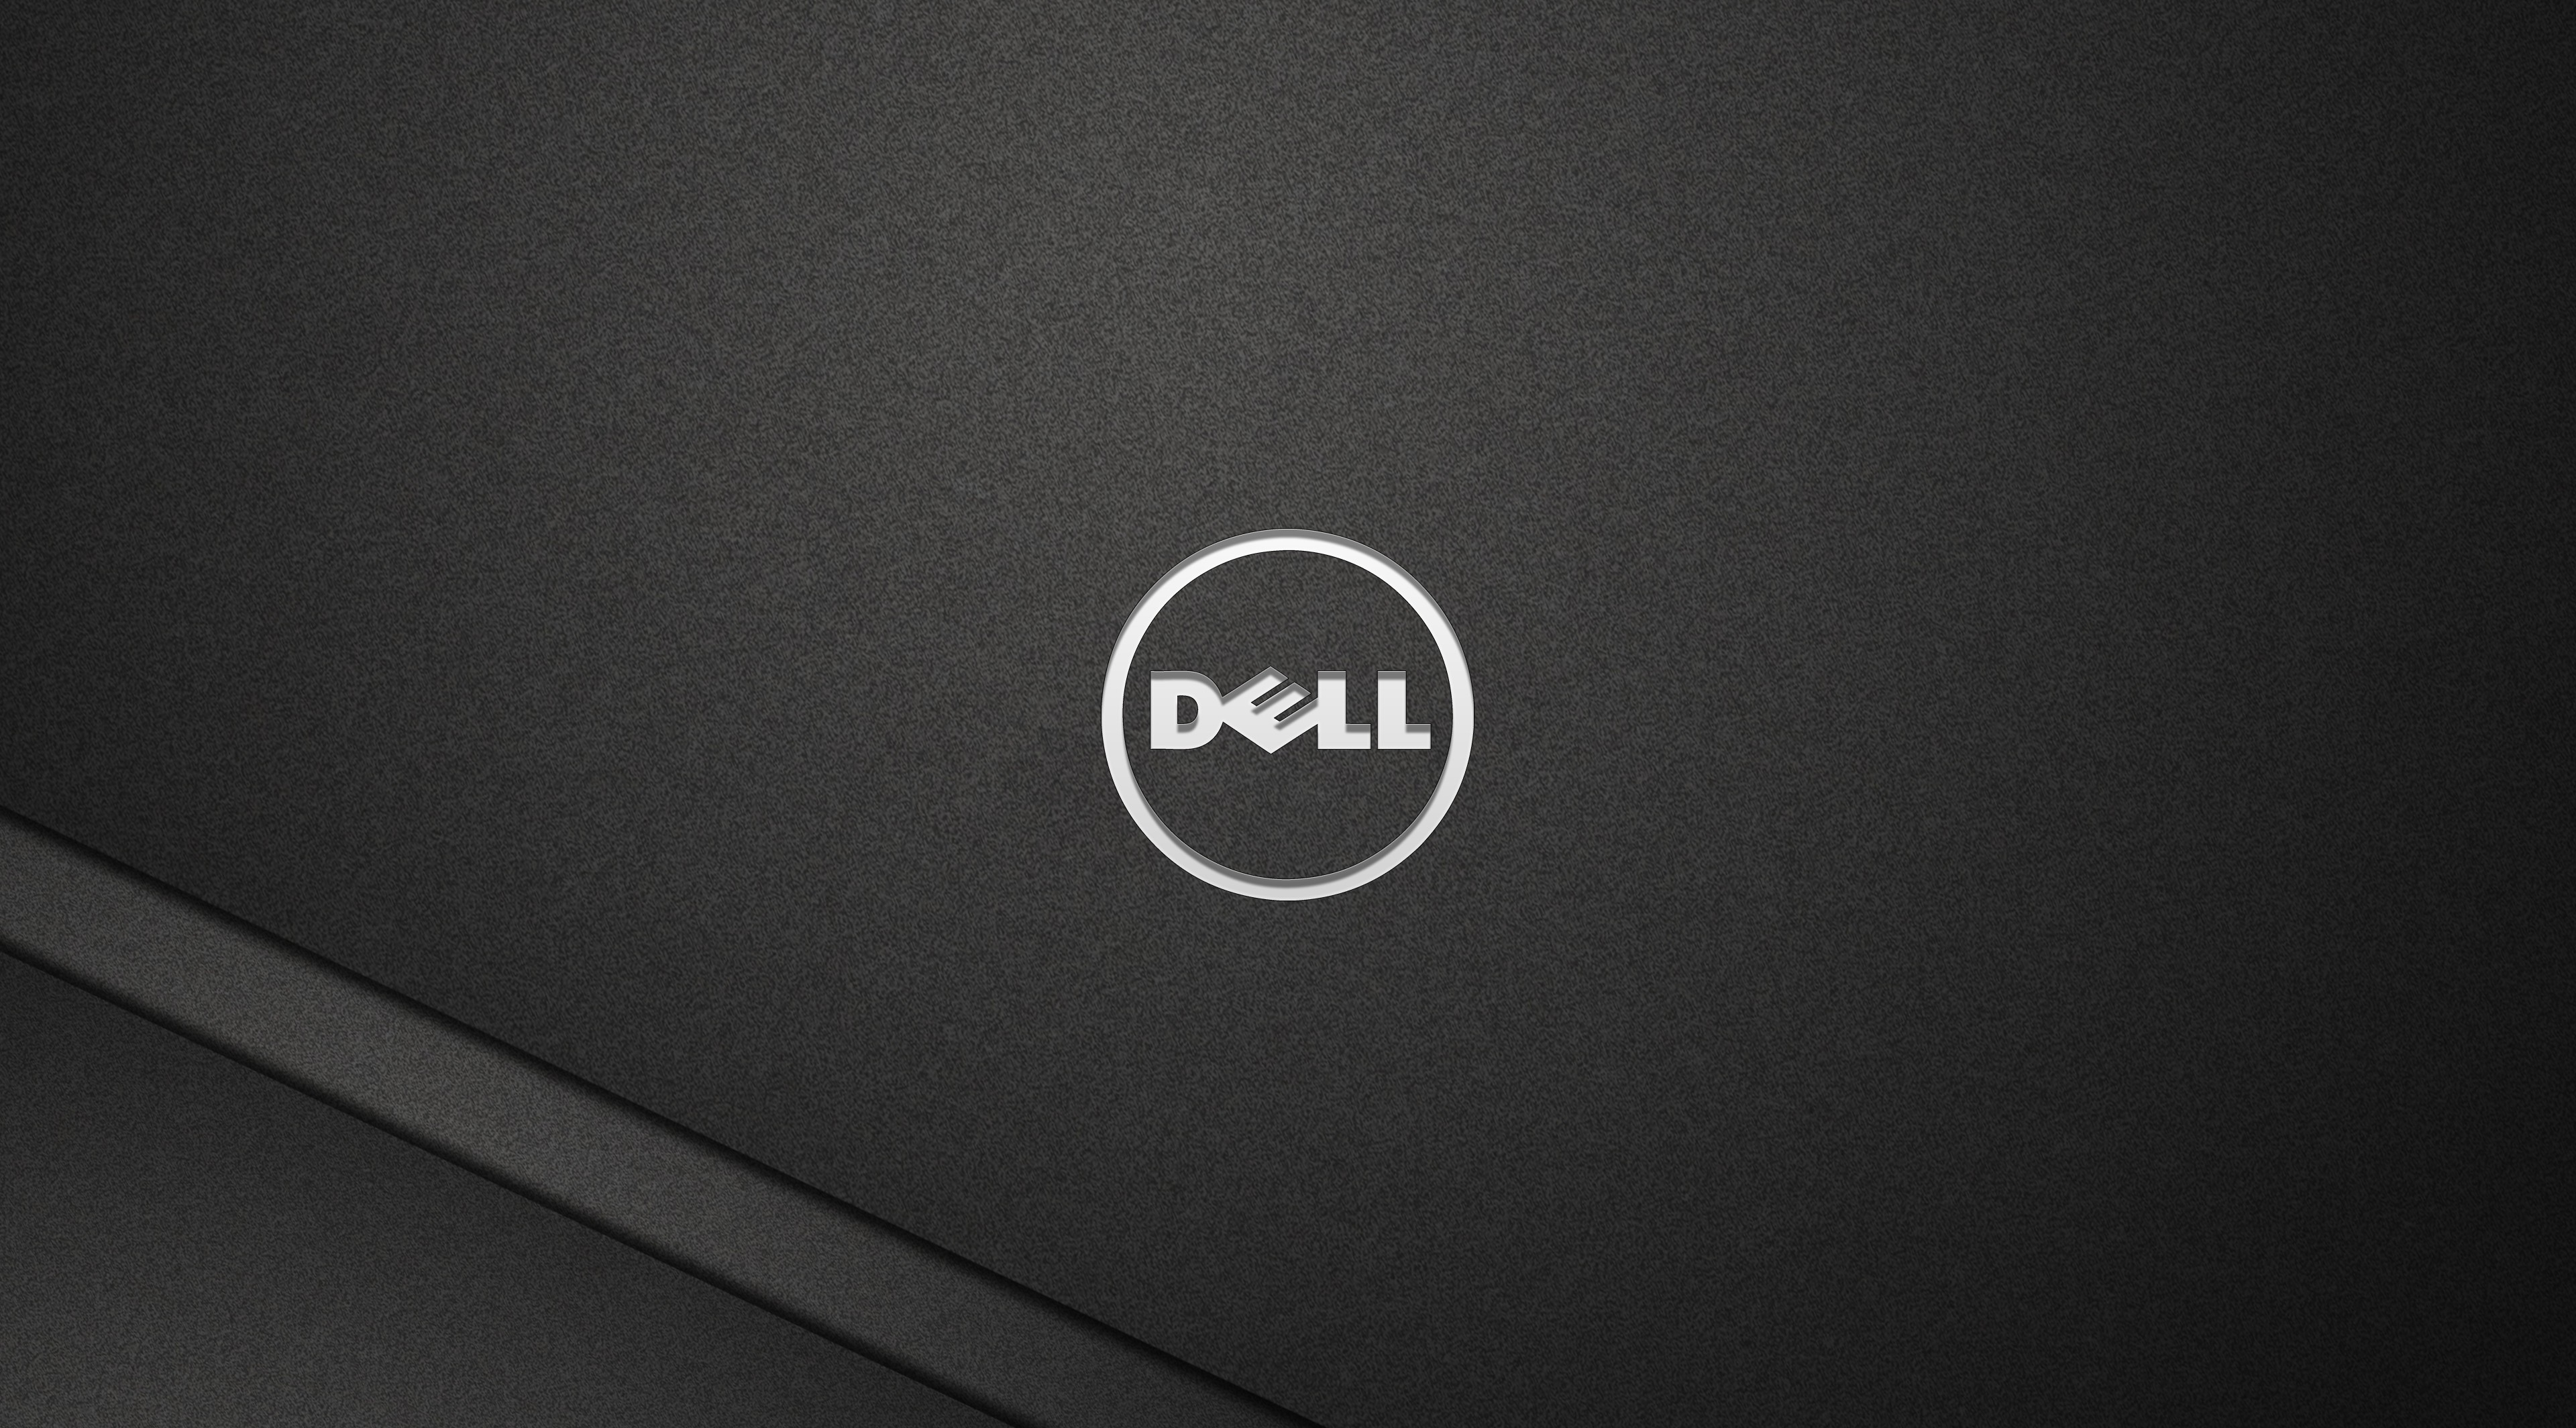 Dell Wallpapers 22